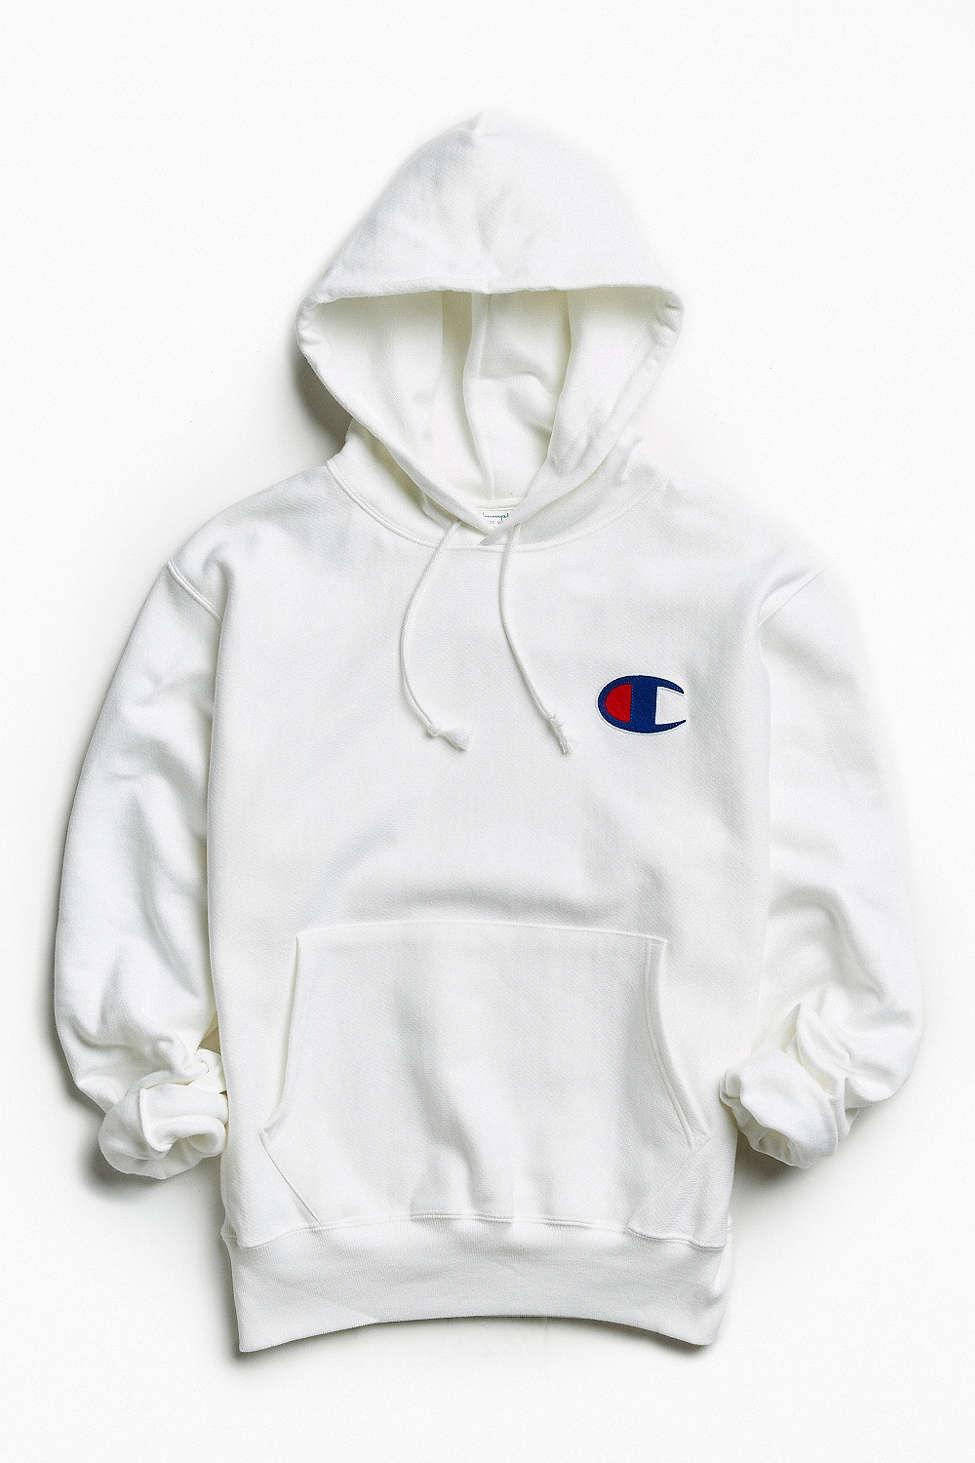 c830fad435 Champion Reverse Weave Large C Hoodie Sweatshirt in White for Men - Lyst